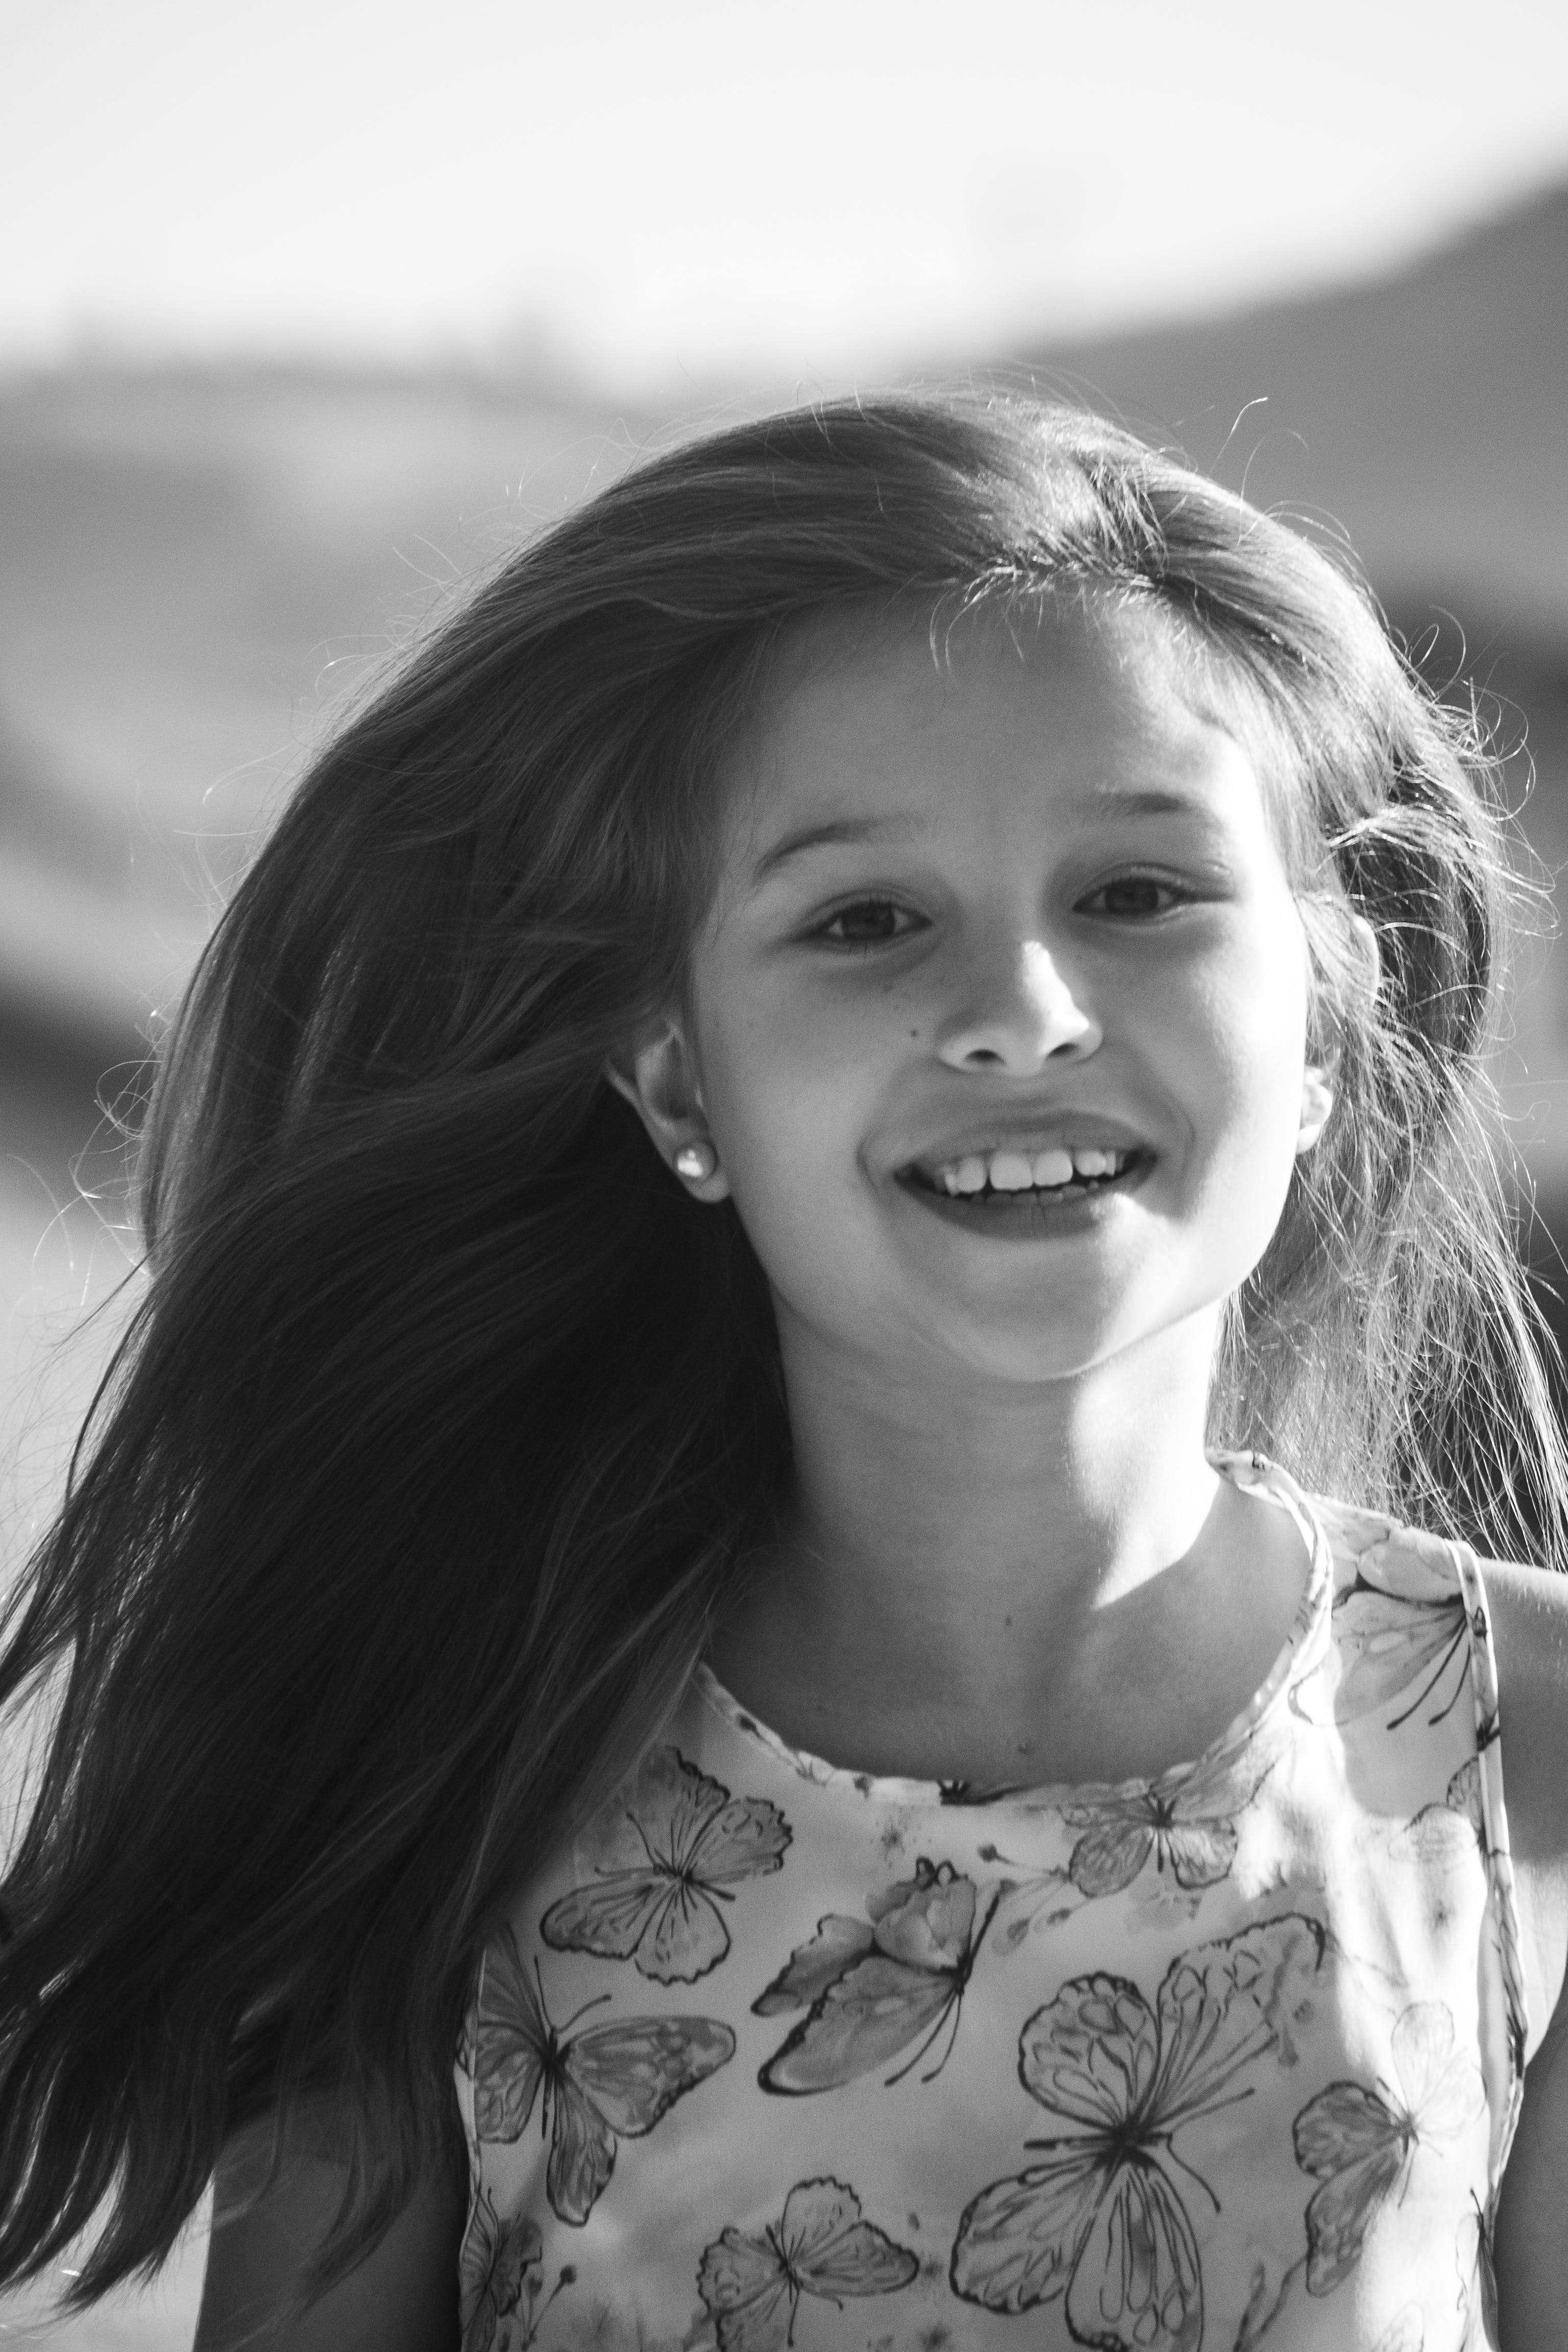 Monochrome Photo Of Girl Smiling